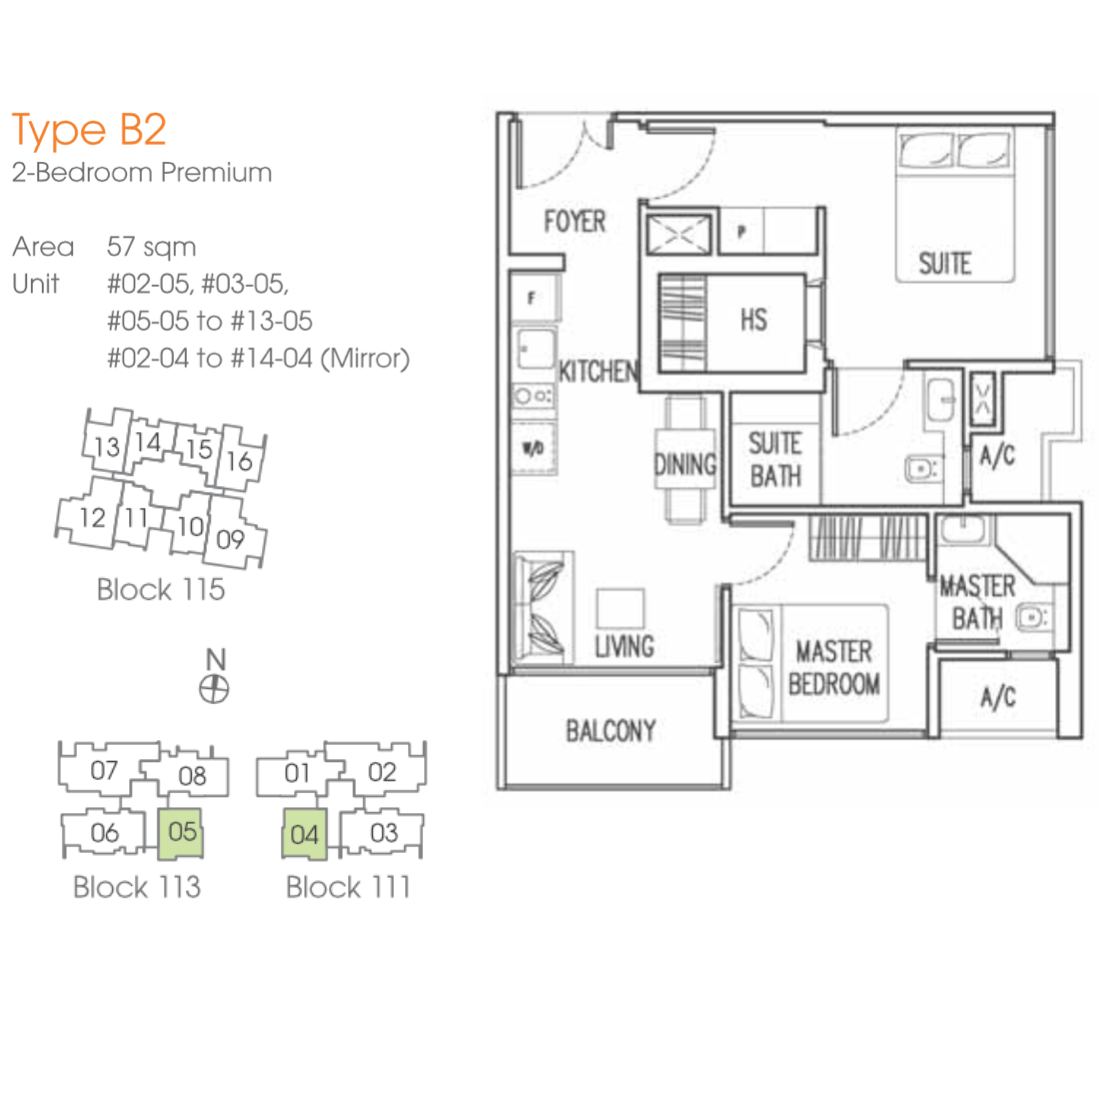 New Launch Condo - Trilive - Floor Plan B2 57sqm 2-Bedroom Premium